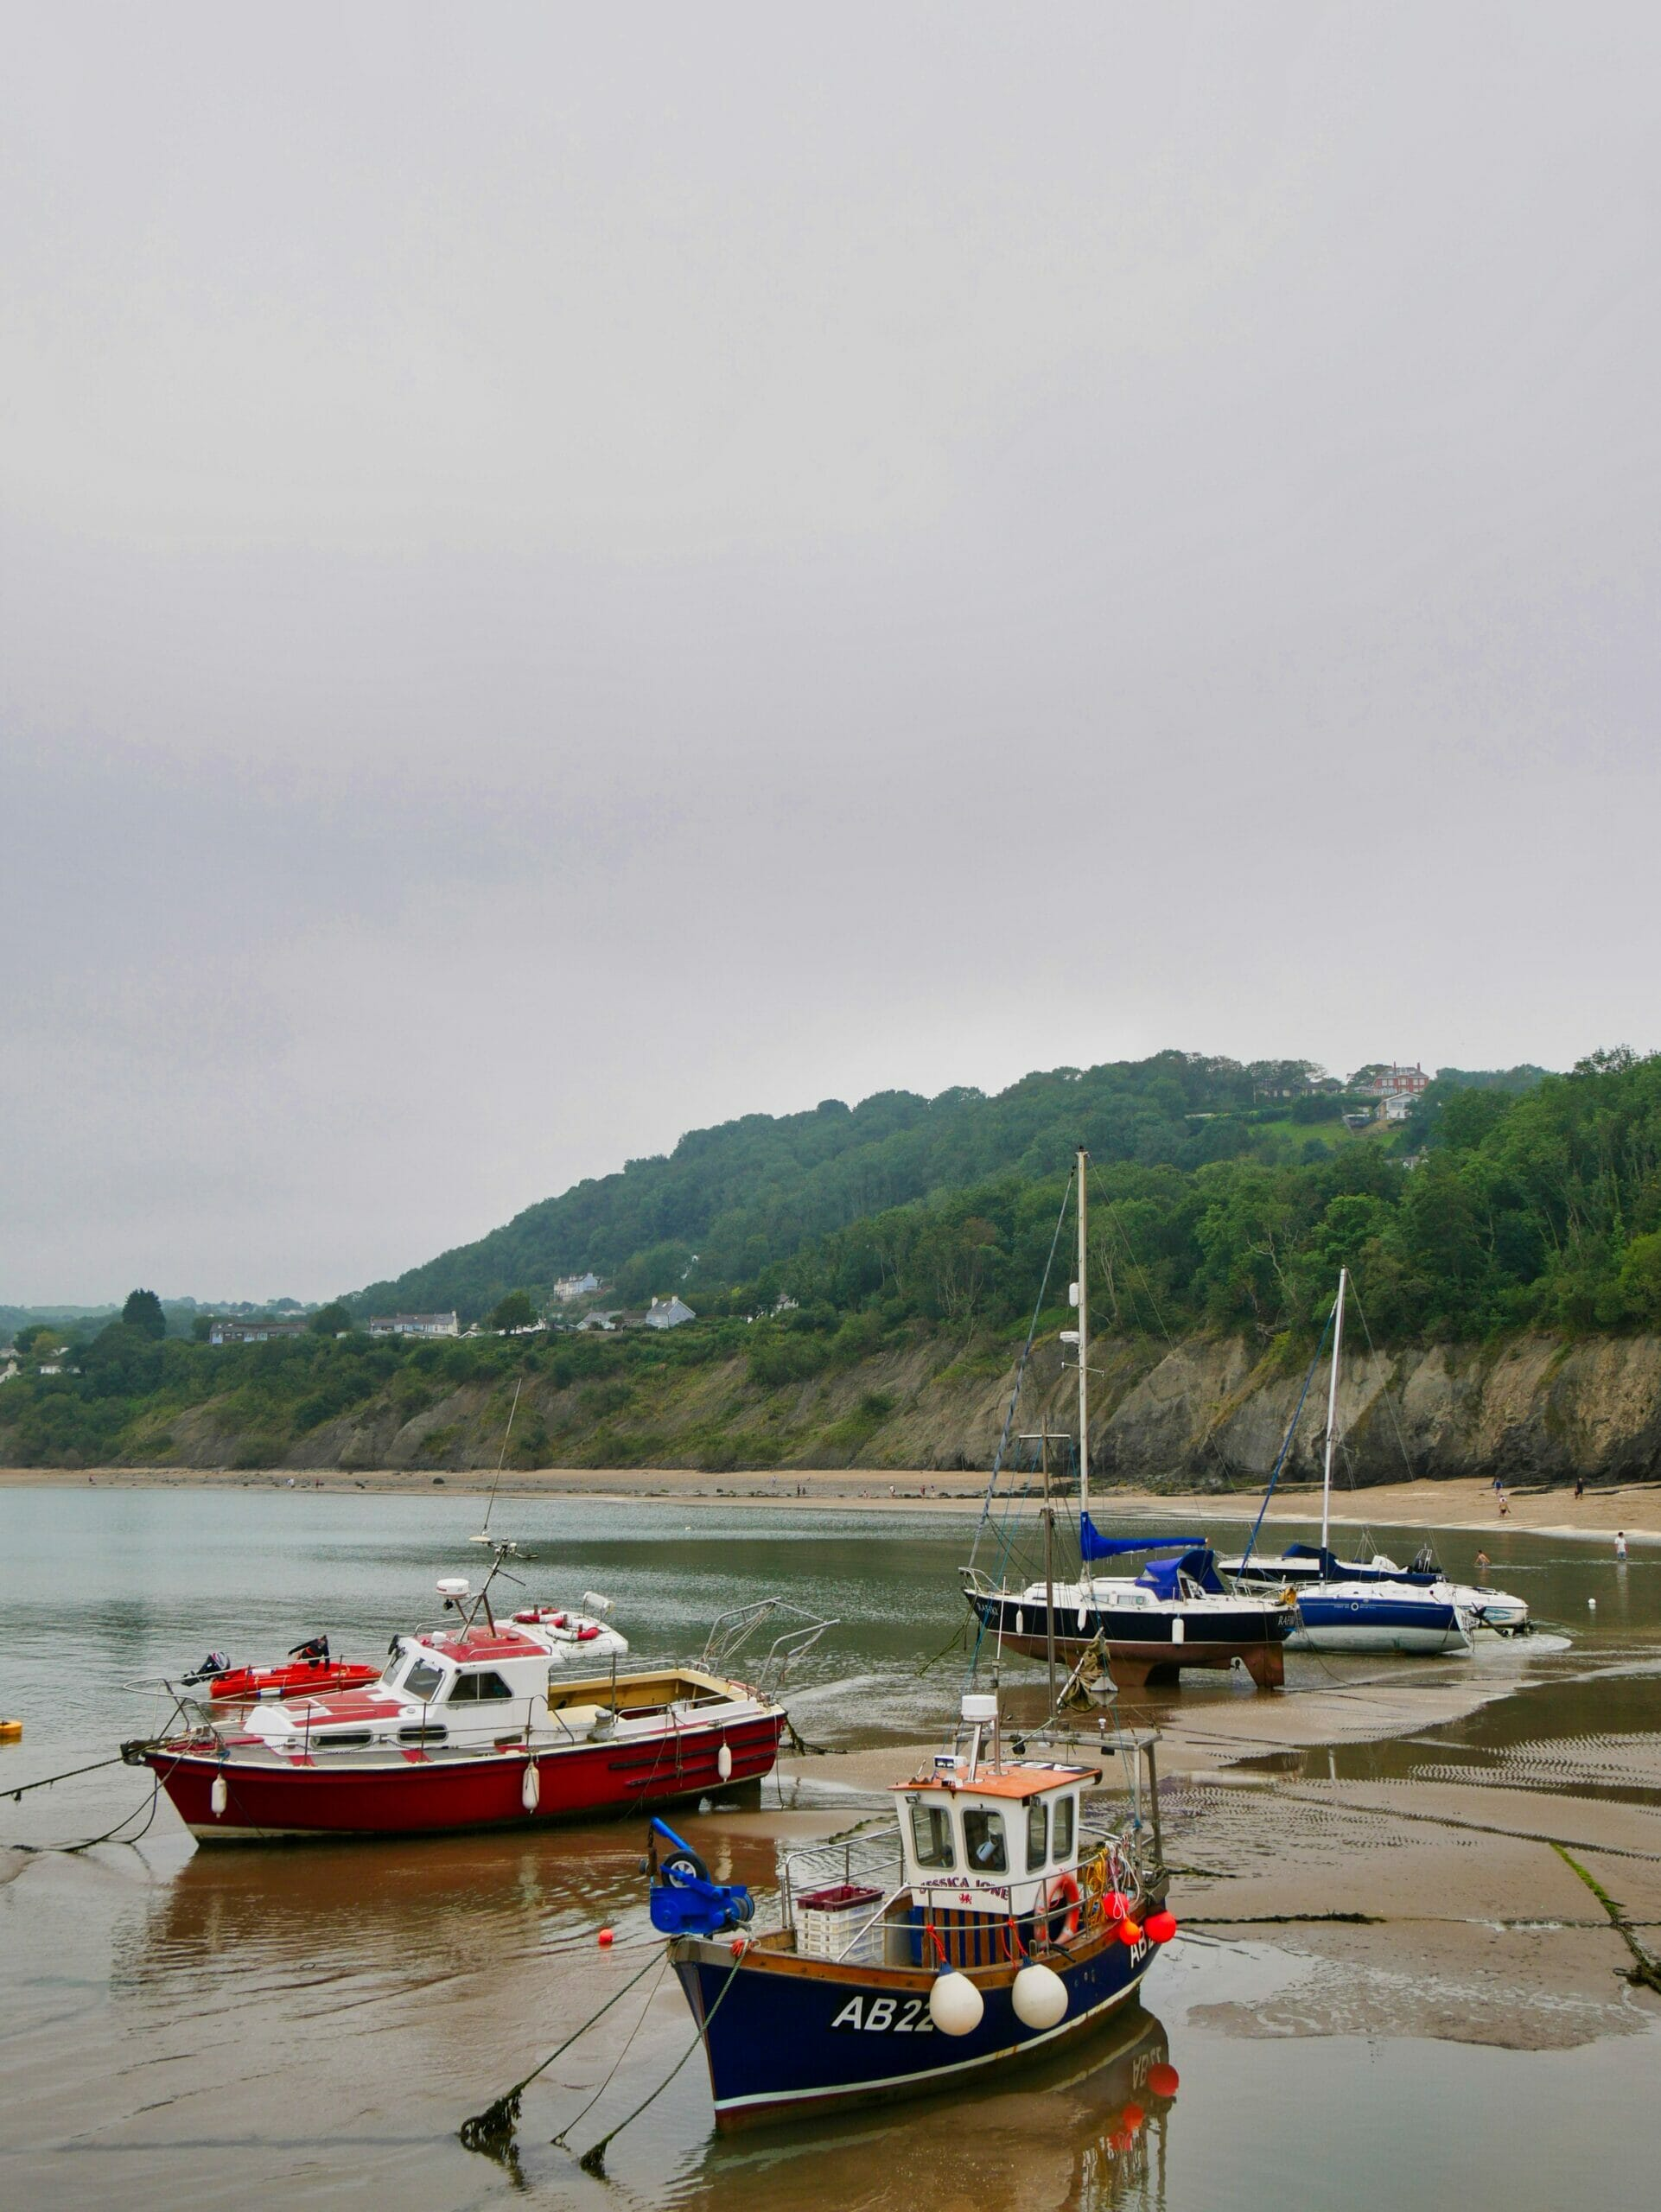 Some boats in the sandy water in New Quay in Wales